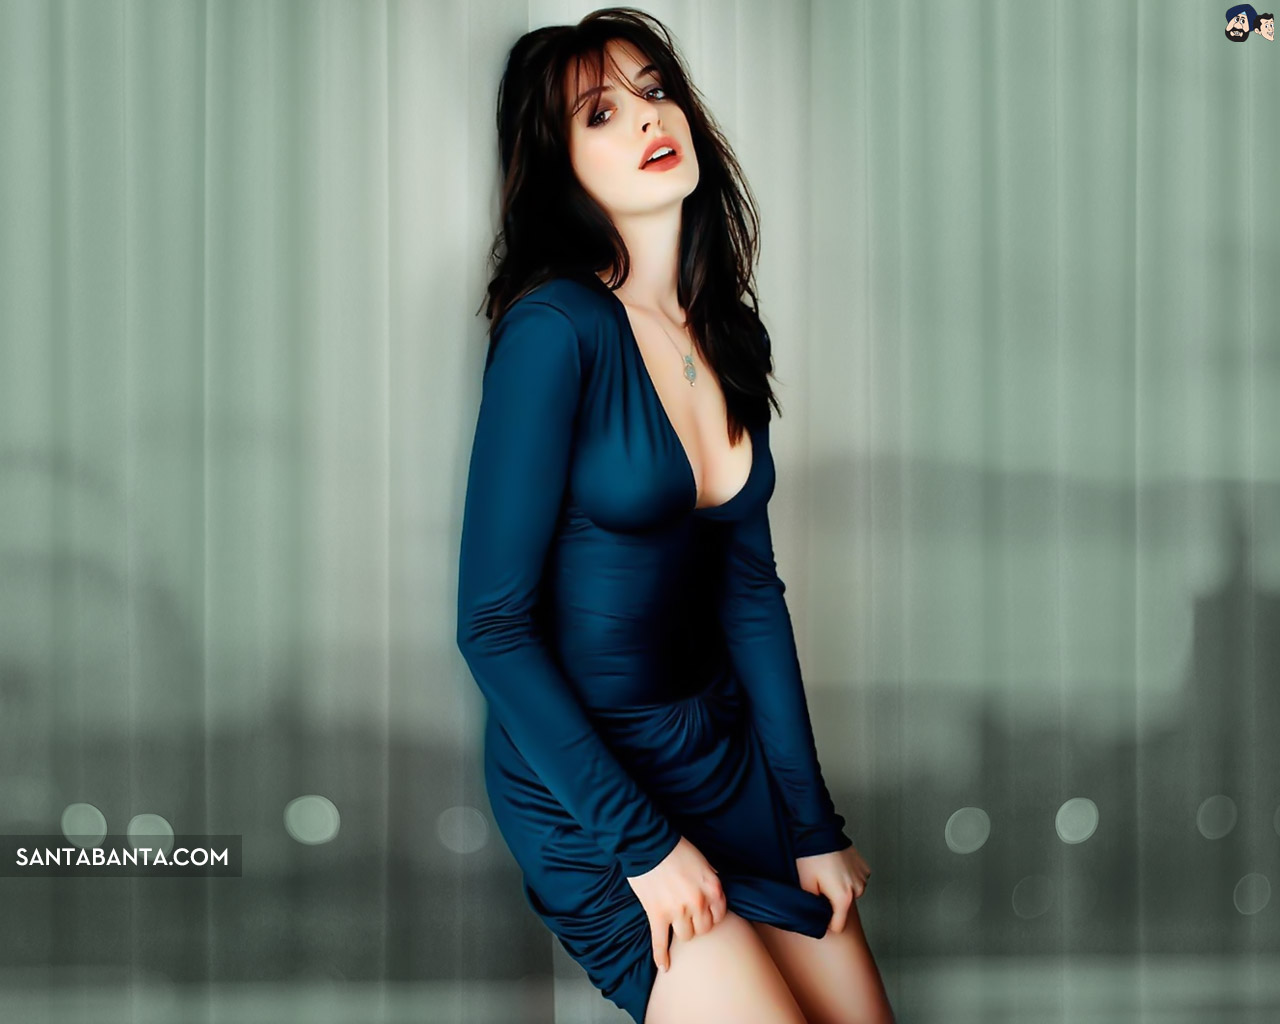 Cute Korean Wallpaper Hd Anne Hathaway Hd Wallpapers Most Beautiful Places In The